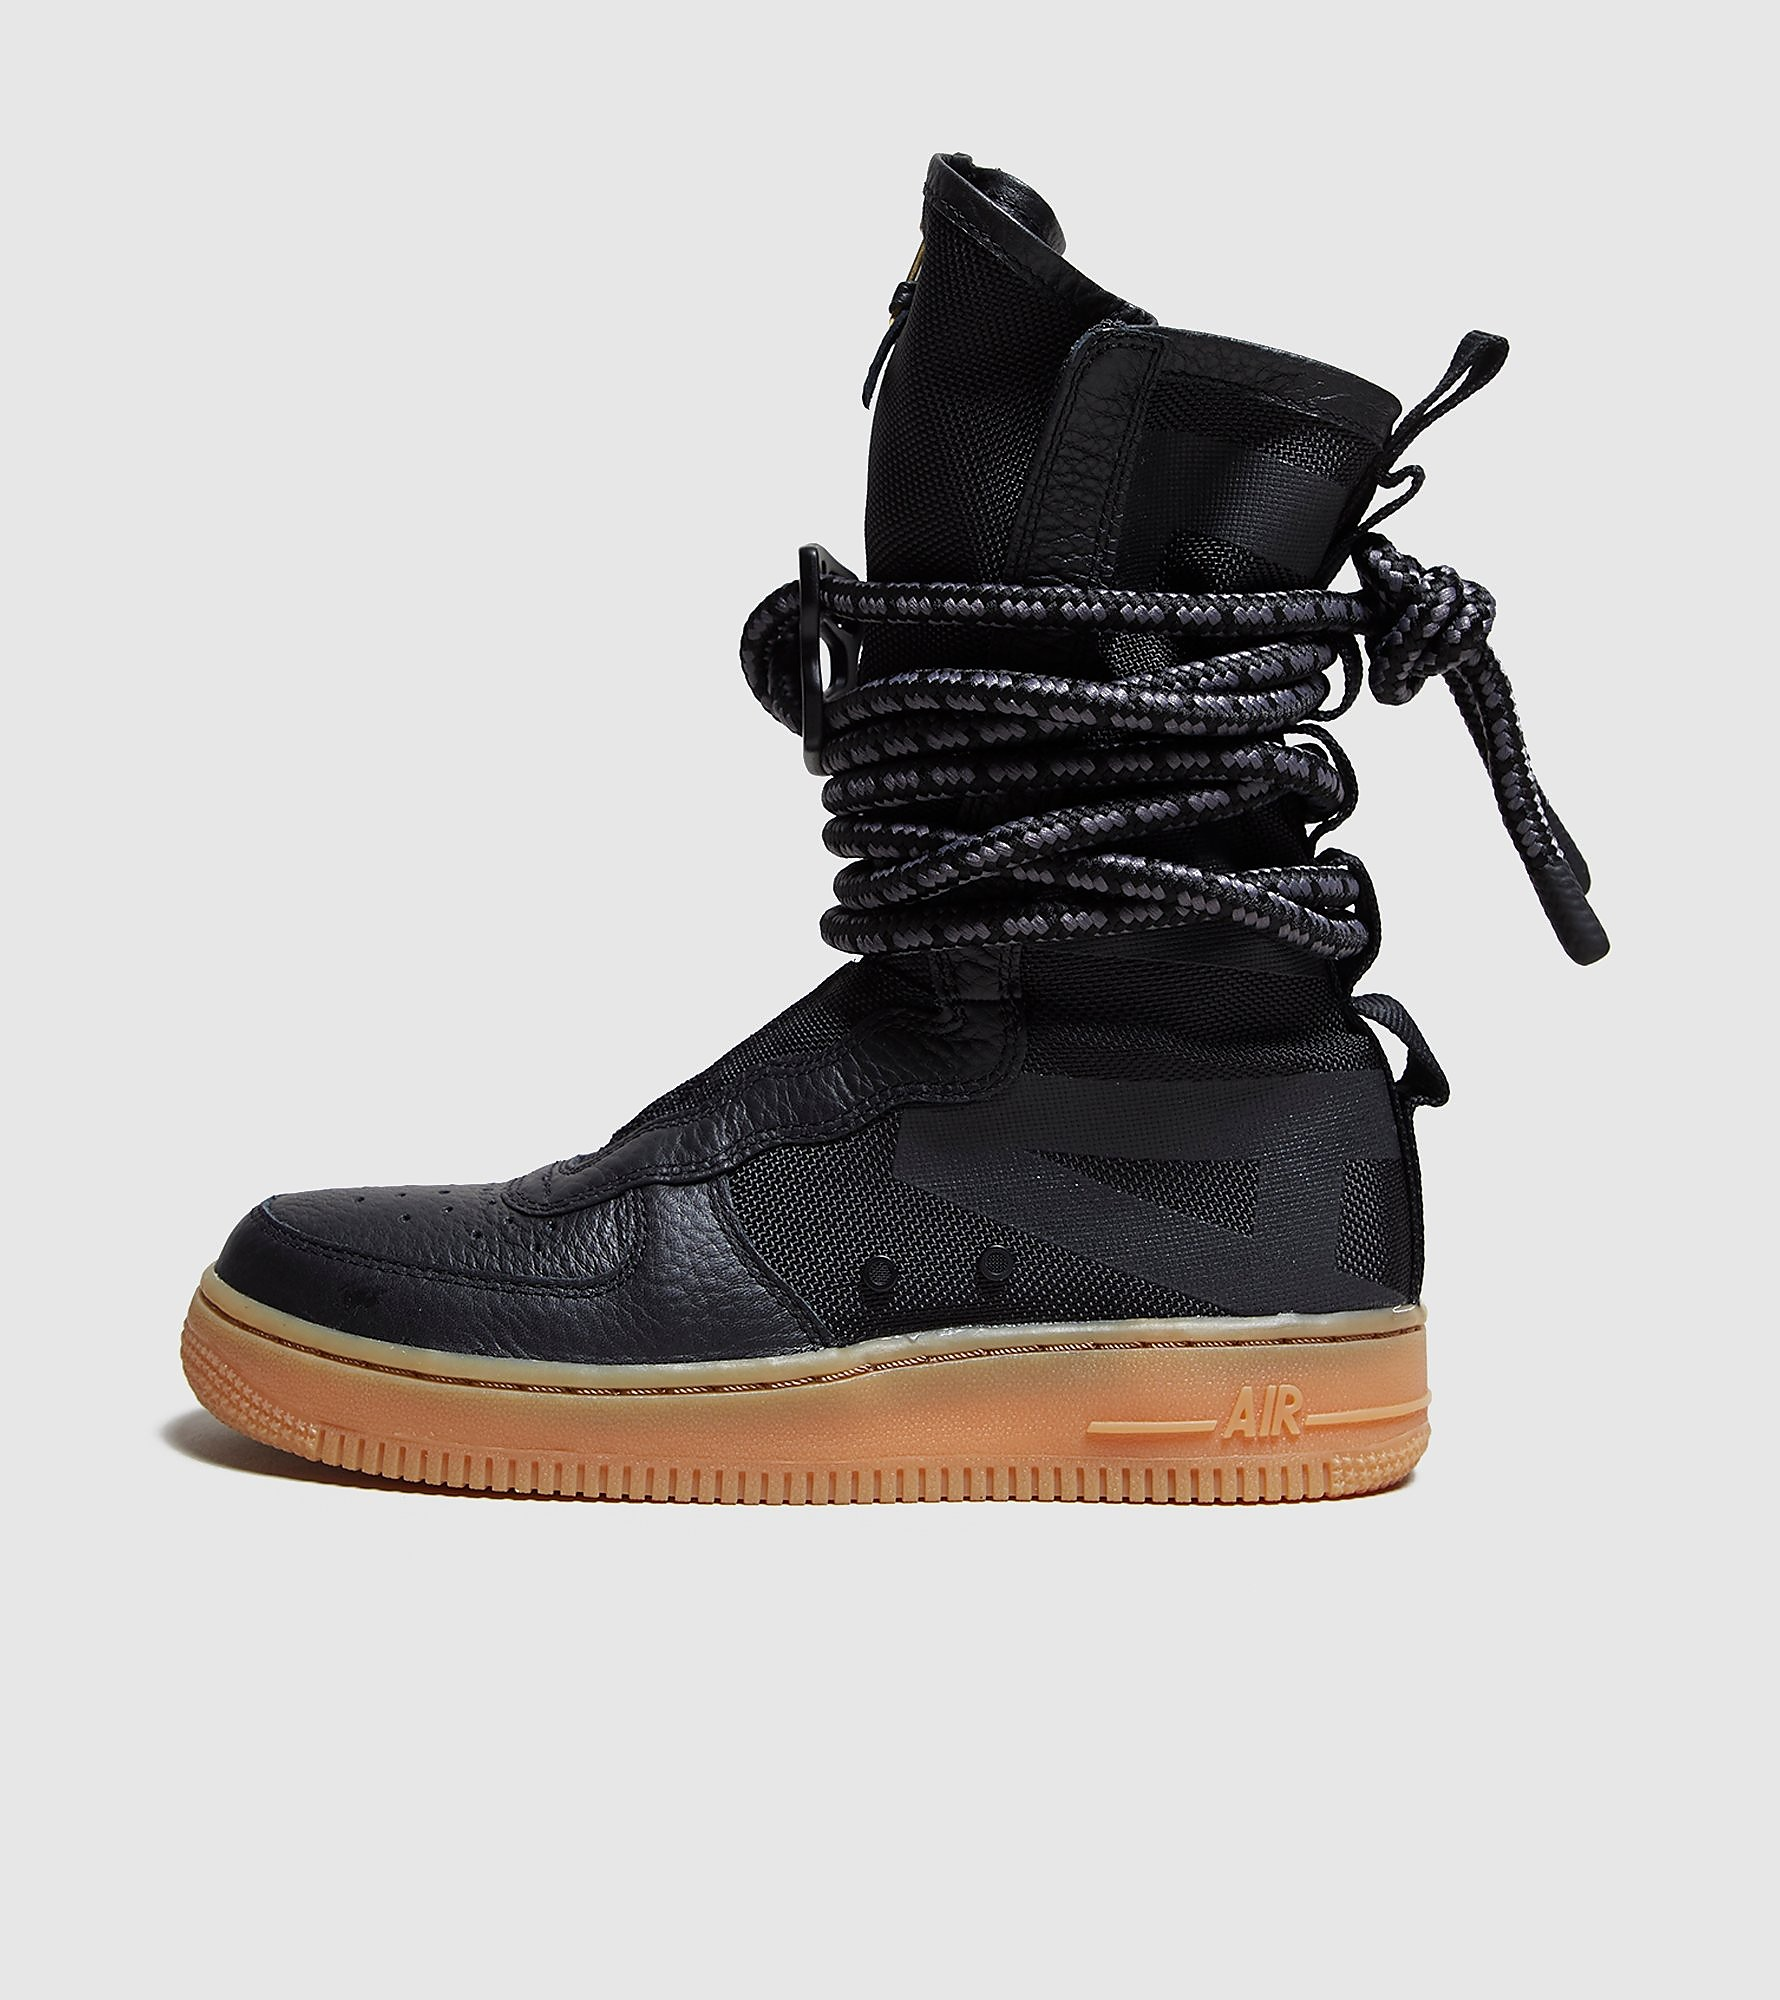 Nike SF Air Force 1 Hi Women's